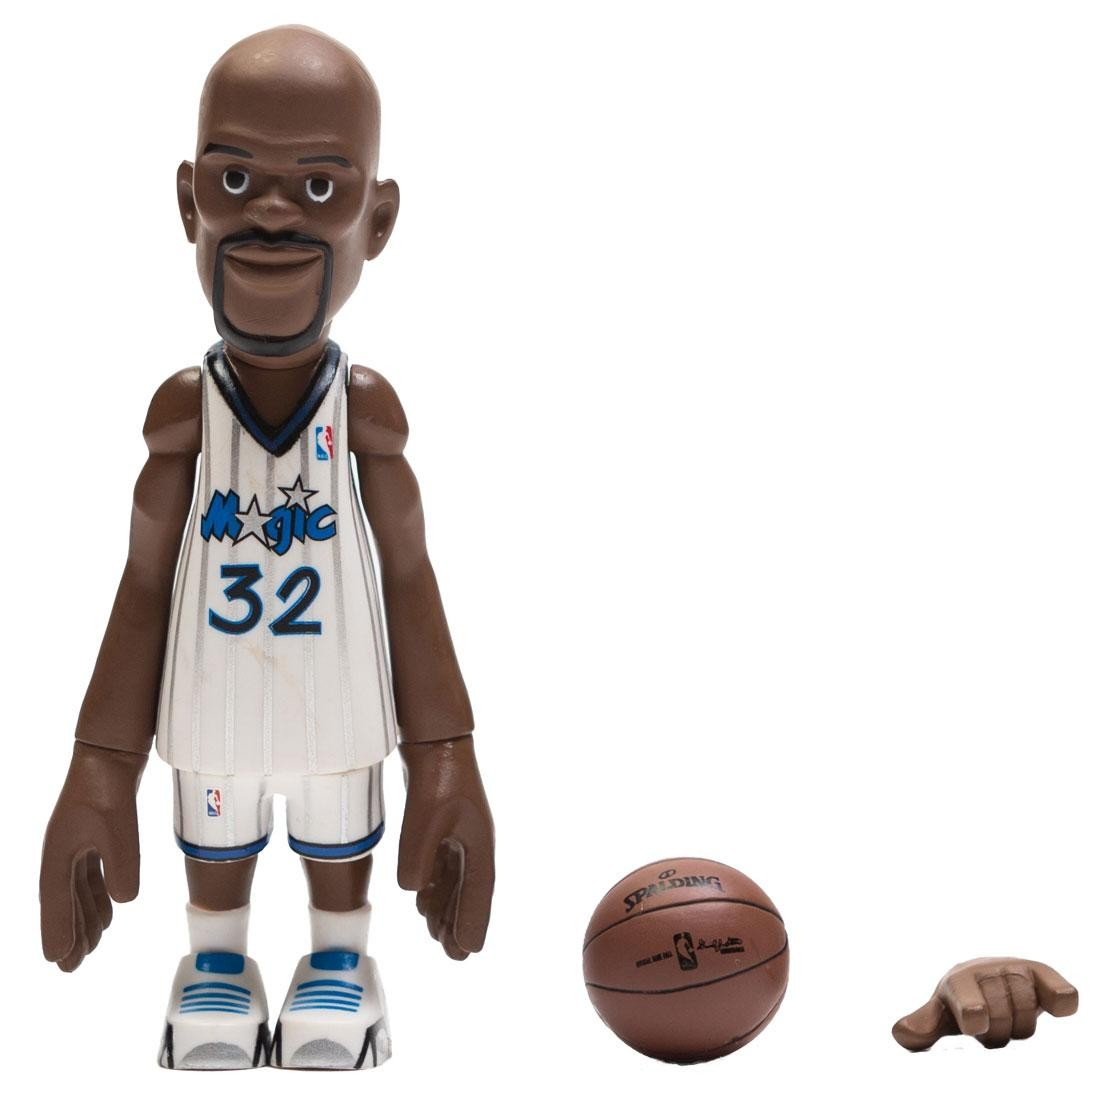 MINDstyle x Coolrain NBA Legends Orlando Magic Shaquille O'Neal Figure (white)